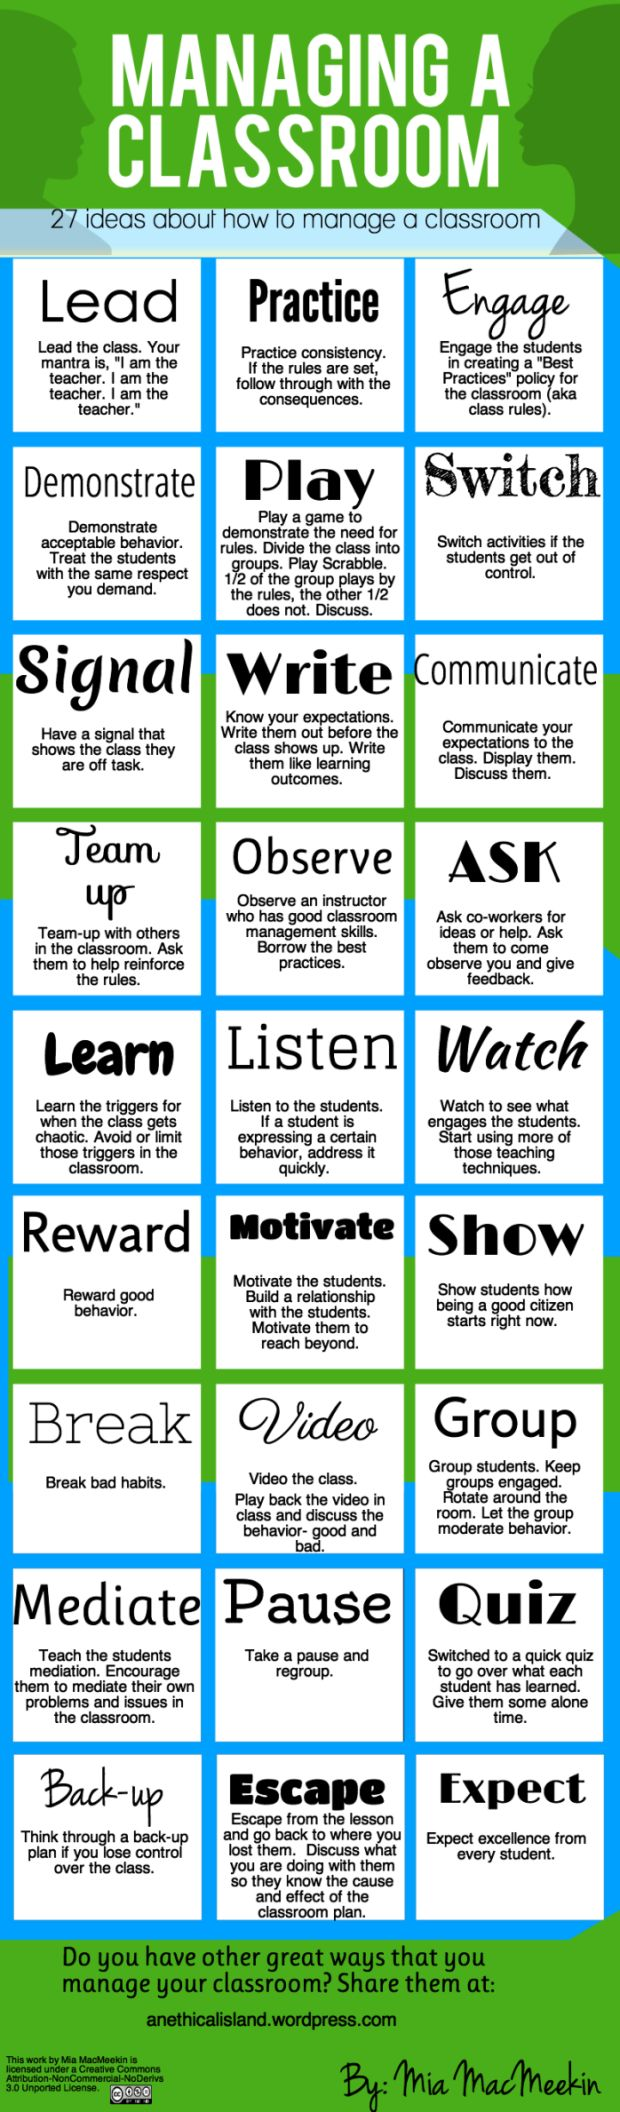 Classroom procedures classroom organization classroom management - 27 Tips For Effective Classroom Management A Great Info Graphic As A Quick Reference On